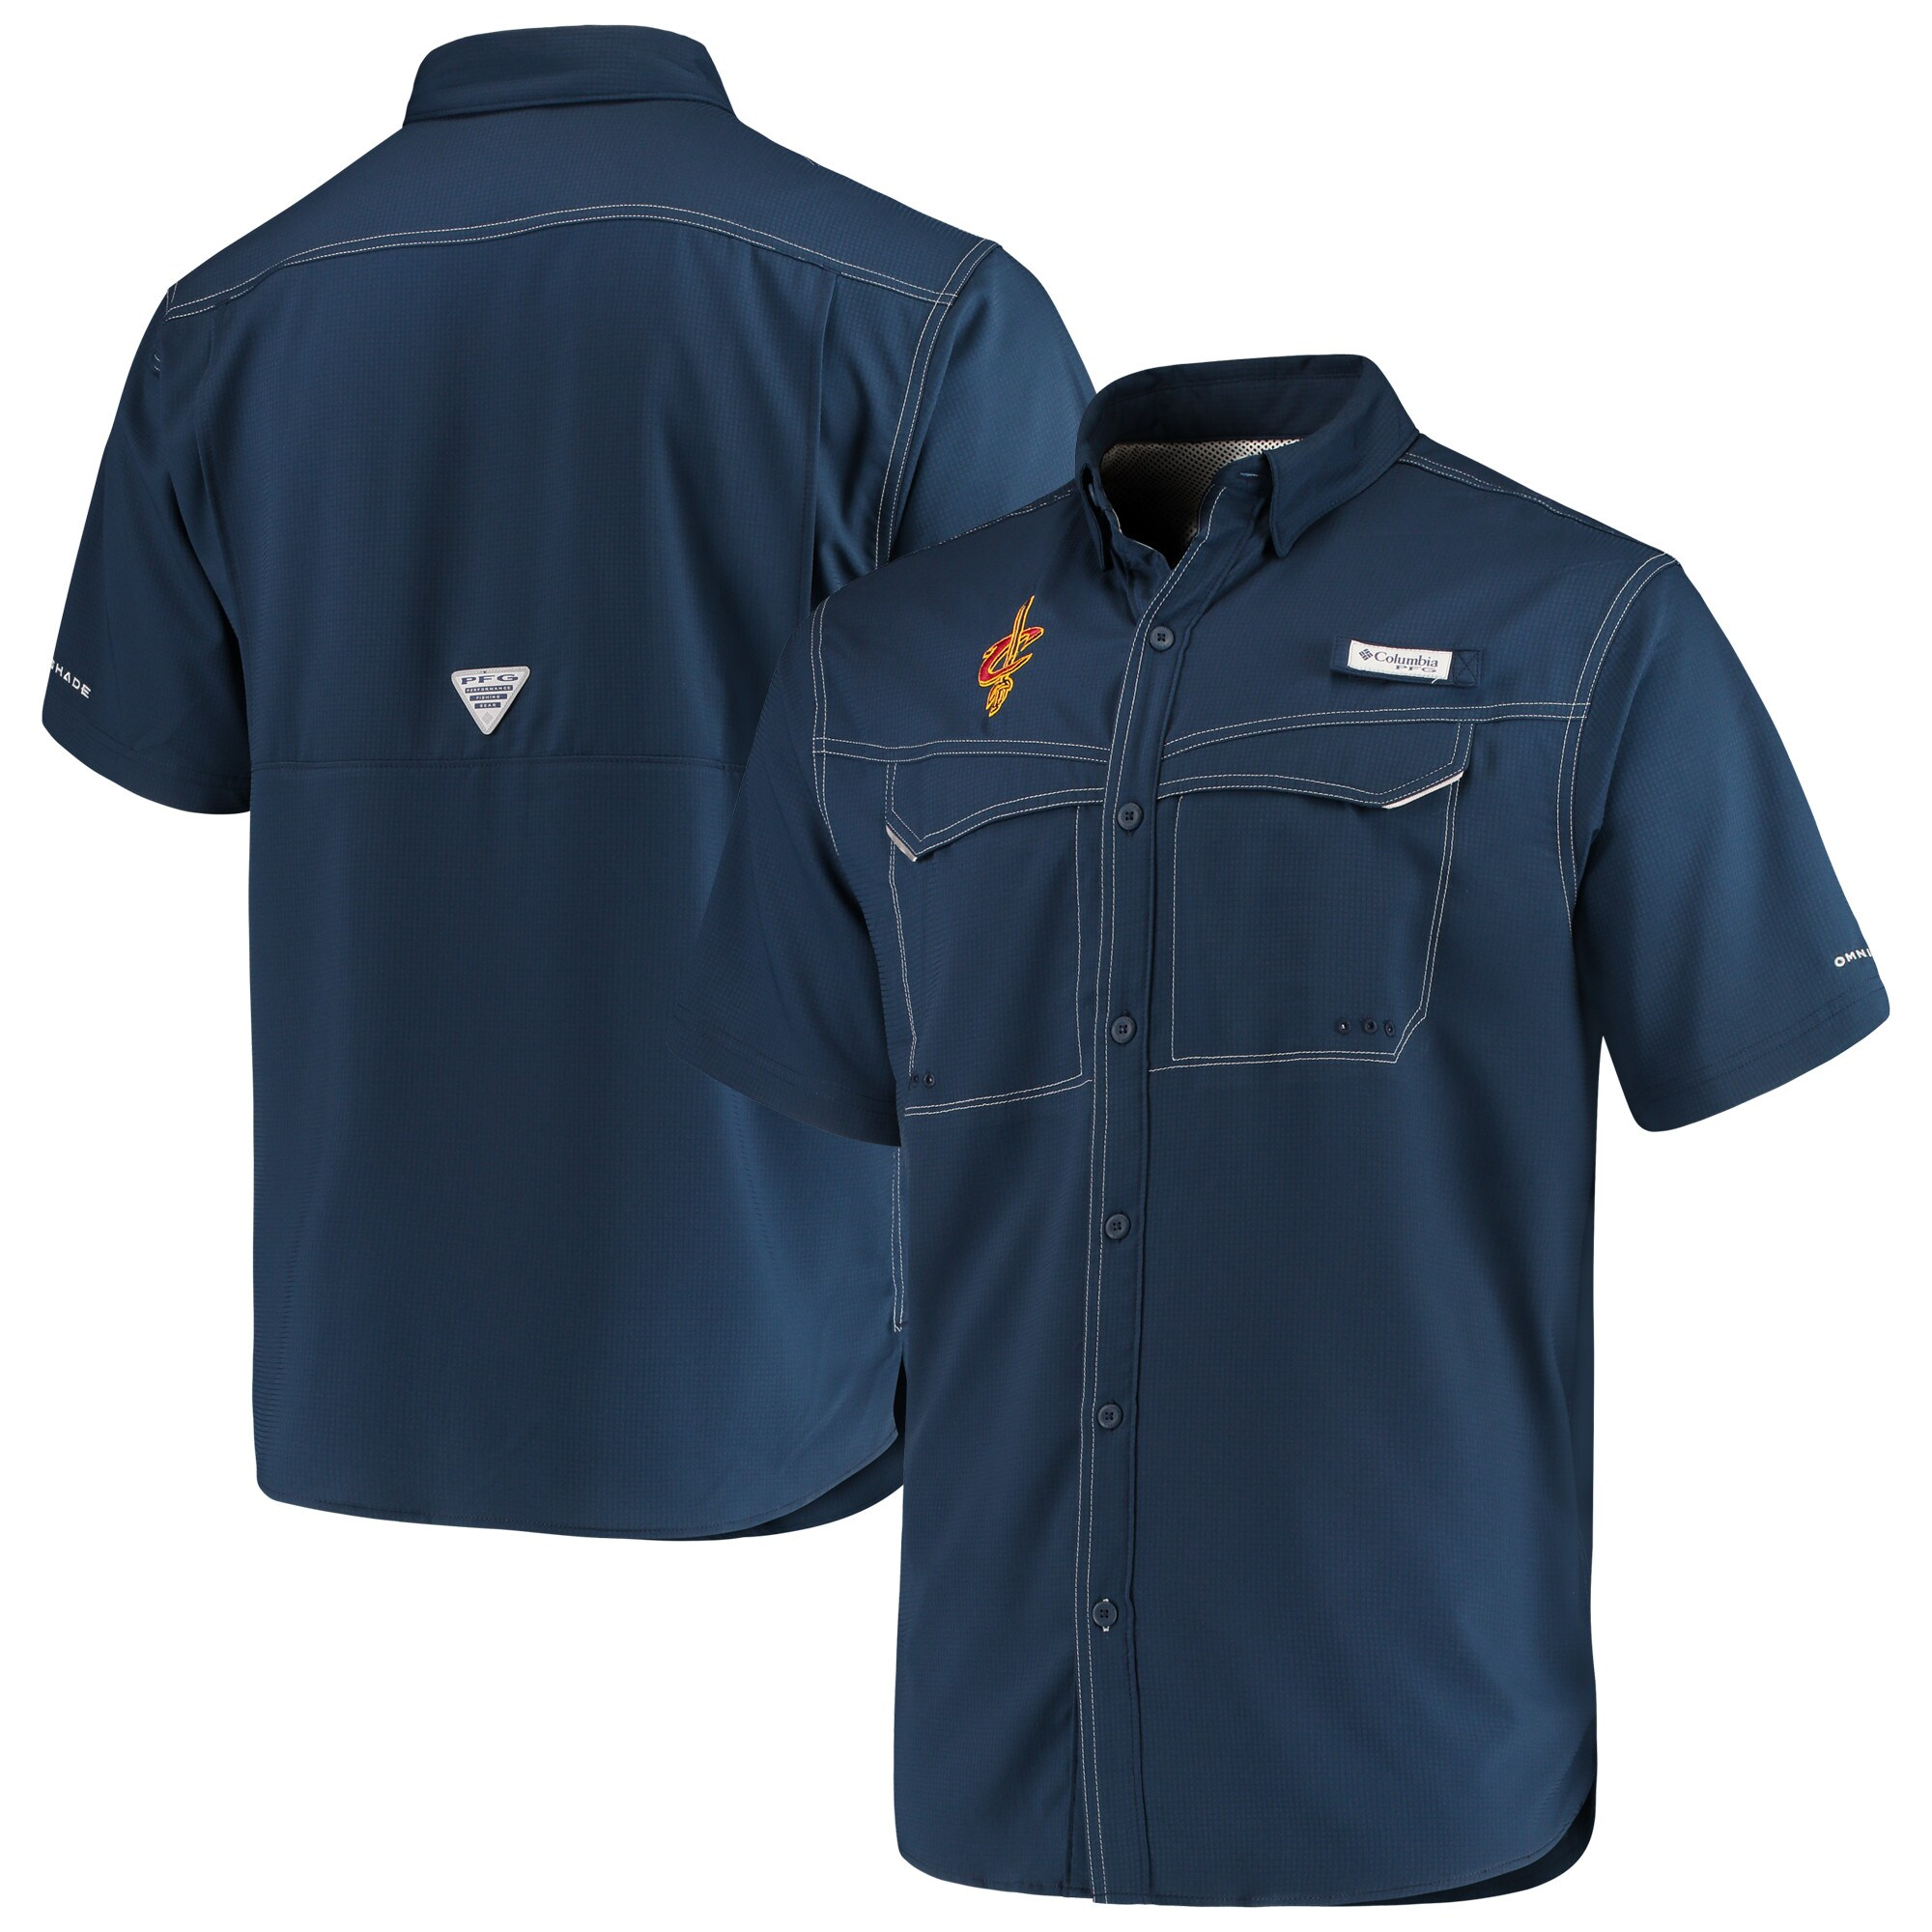 Cleveland Cavaliers Columbia Low Drag Offshore Omni-Shade Button-Up Shirt - Navy